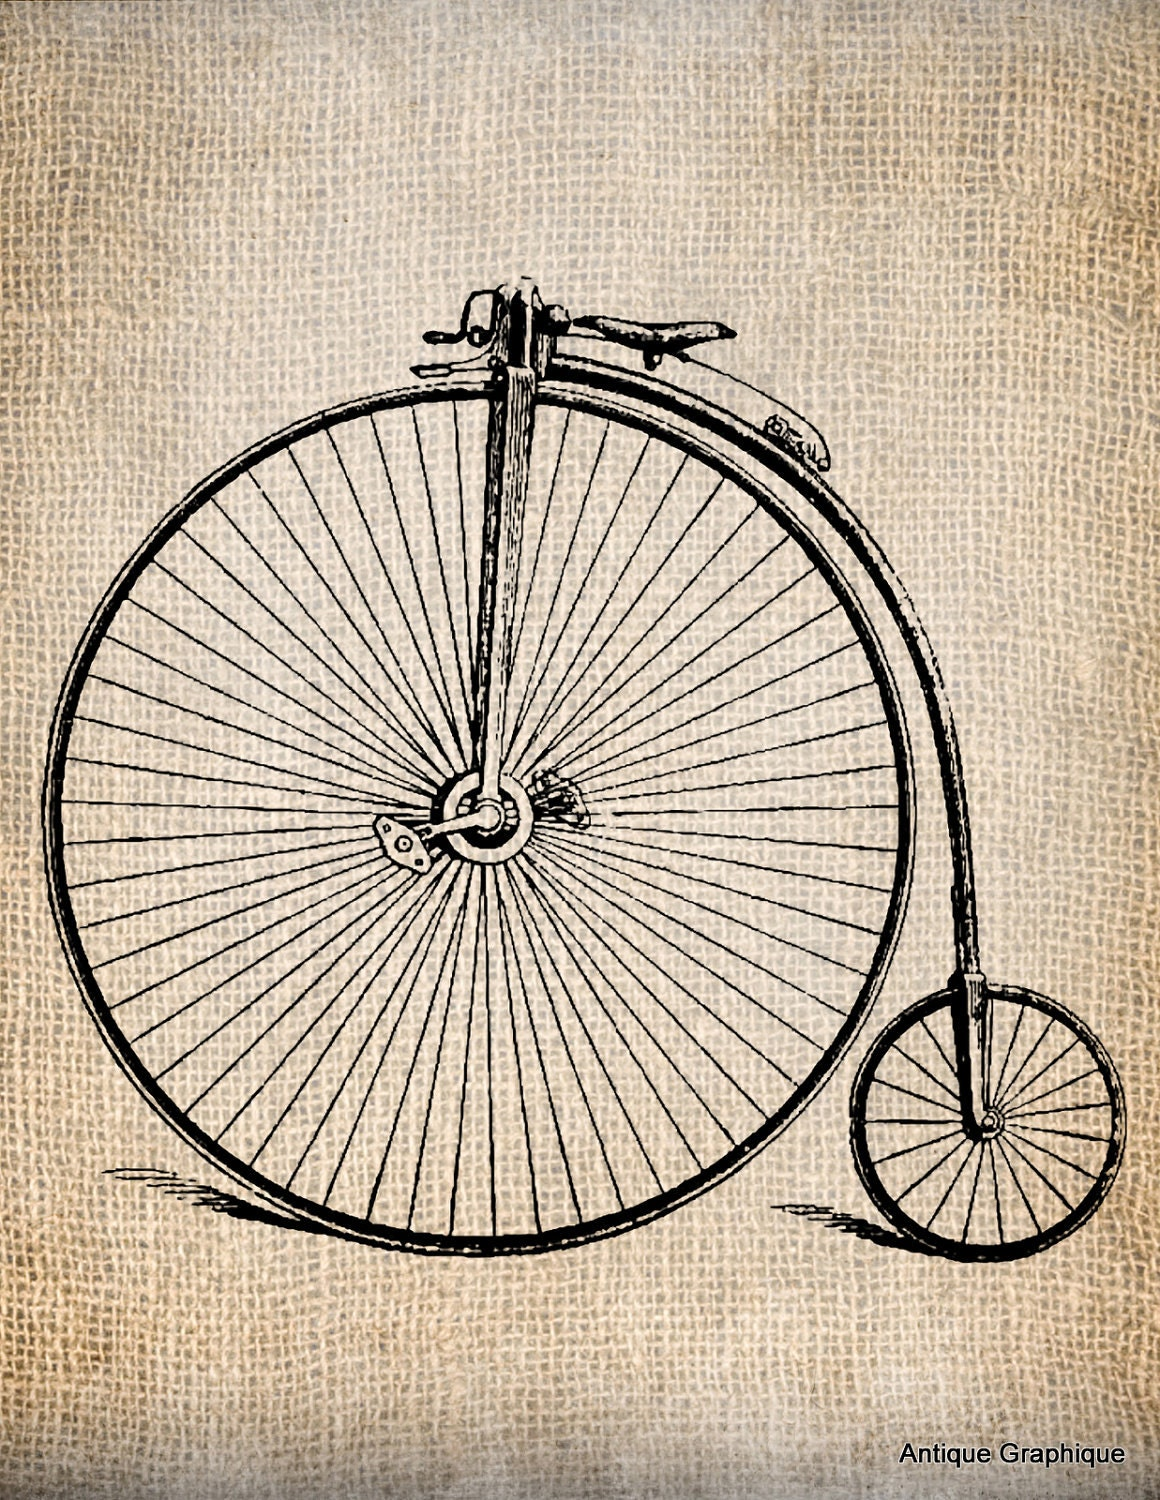 Old fashioned big wheel tricycle Get Rich With Bikes - Mr. Money Mustache